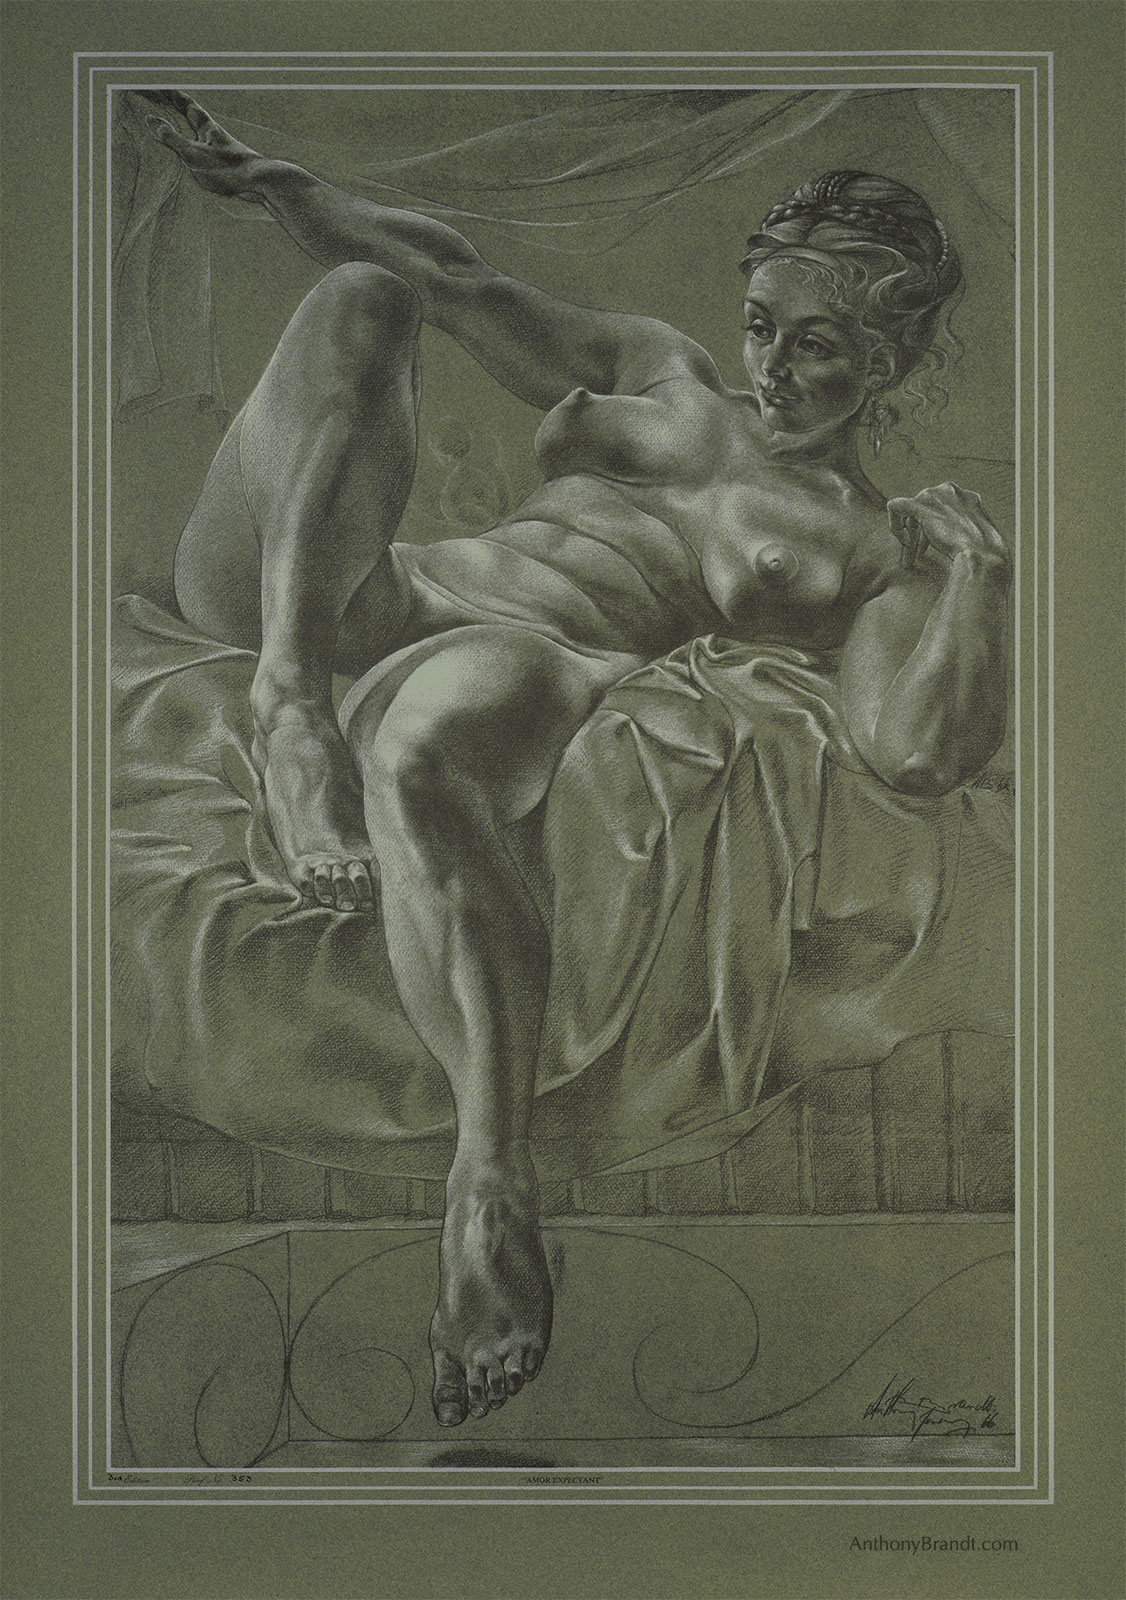 Limited Edition Lithographic Print - ' Amor Expectant' by Artist Anthony Brandt , The Modern Michelangelo